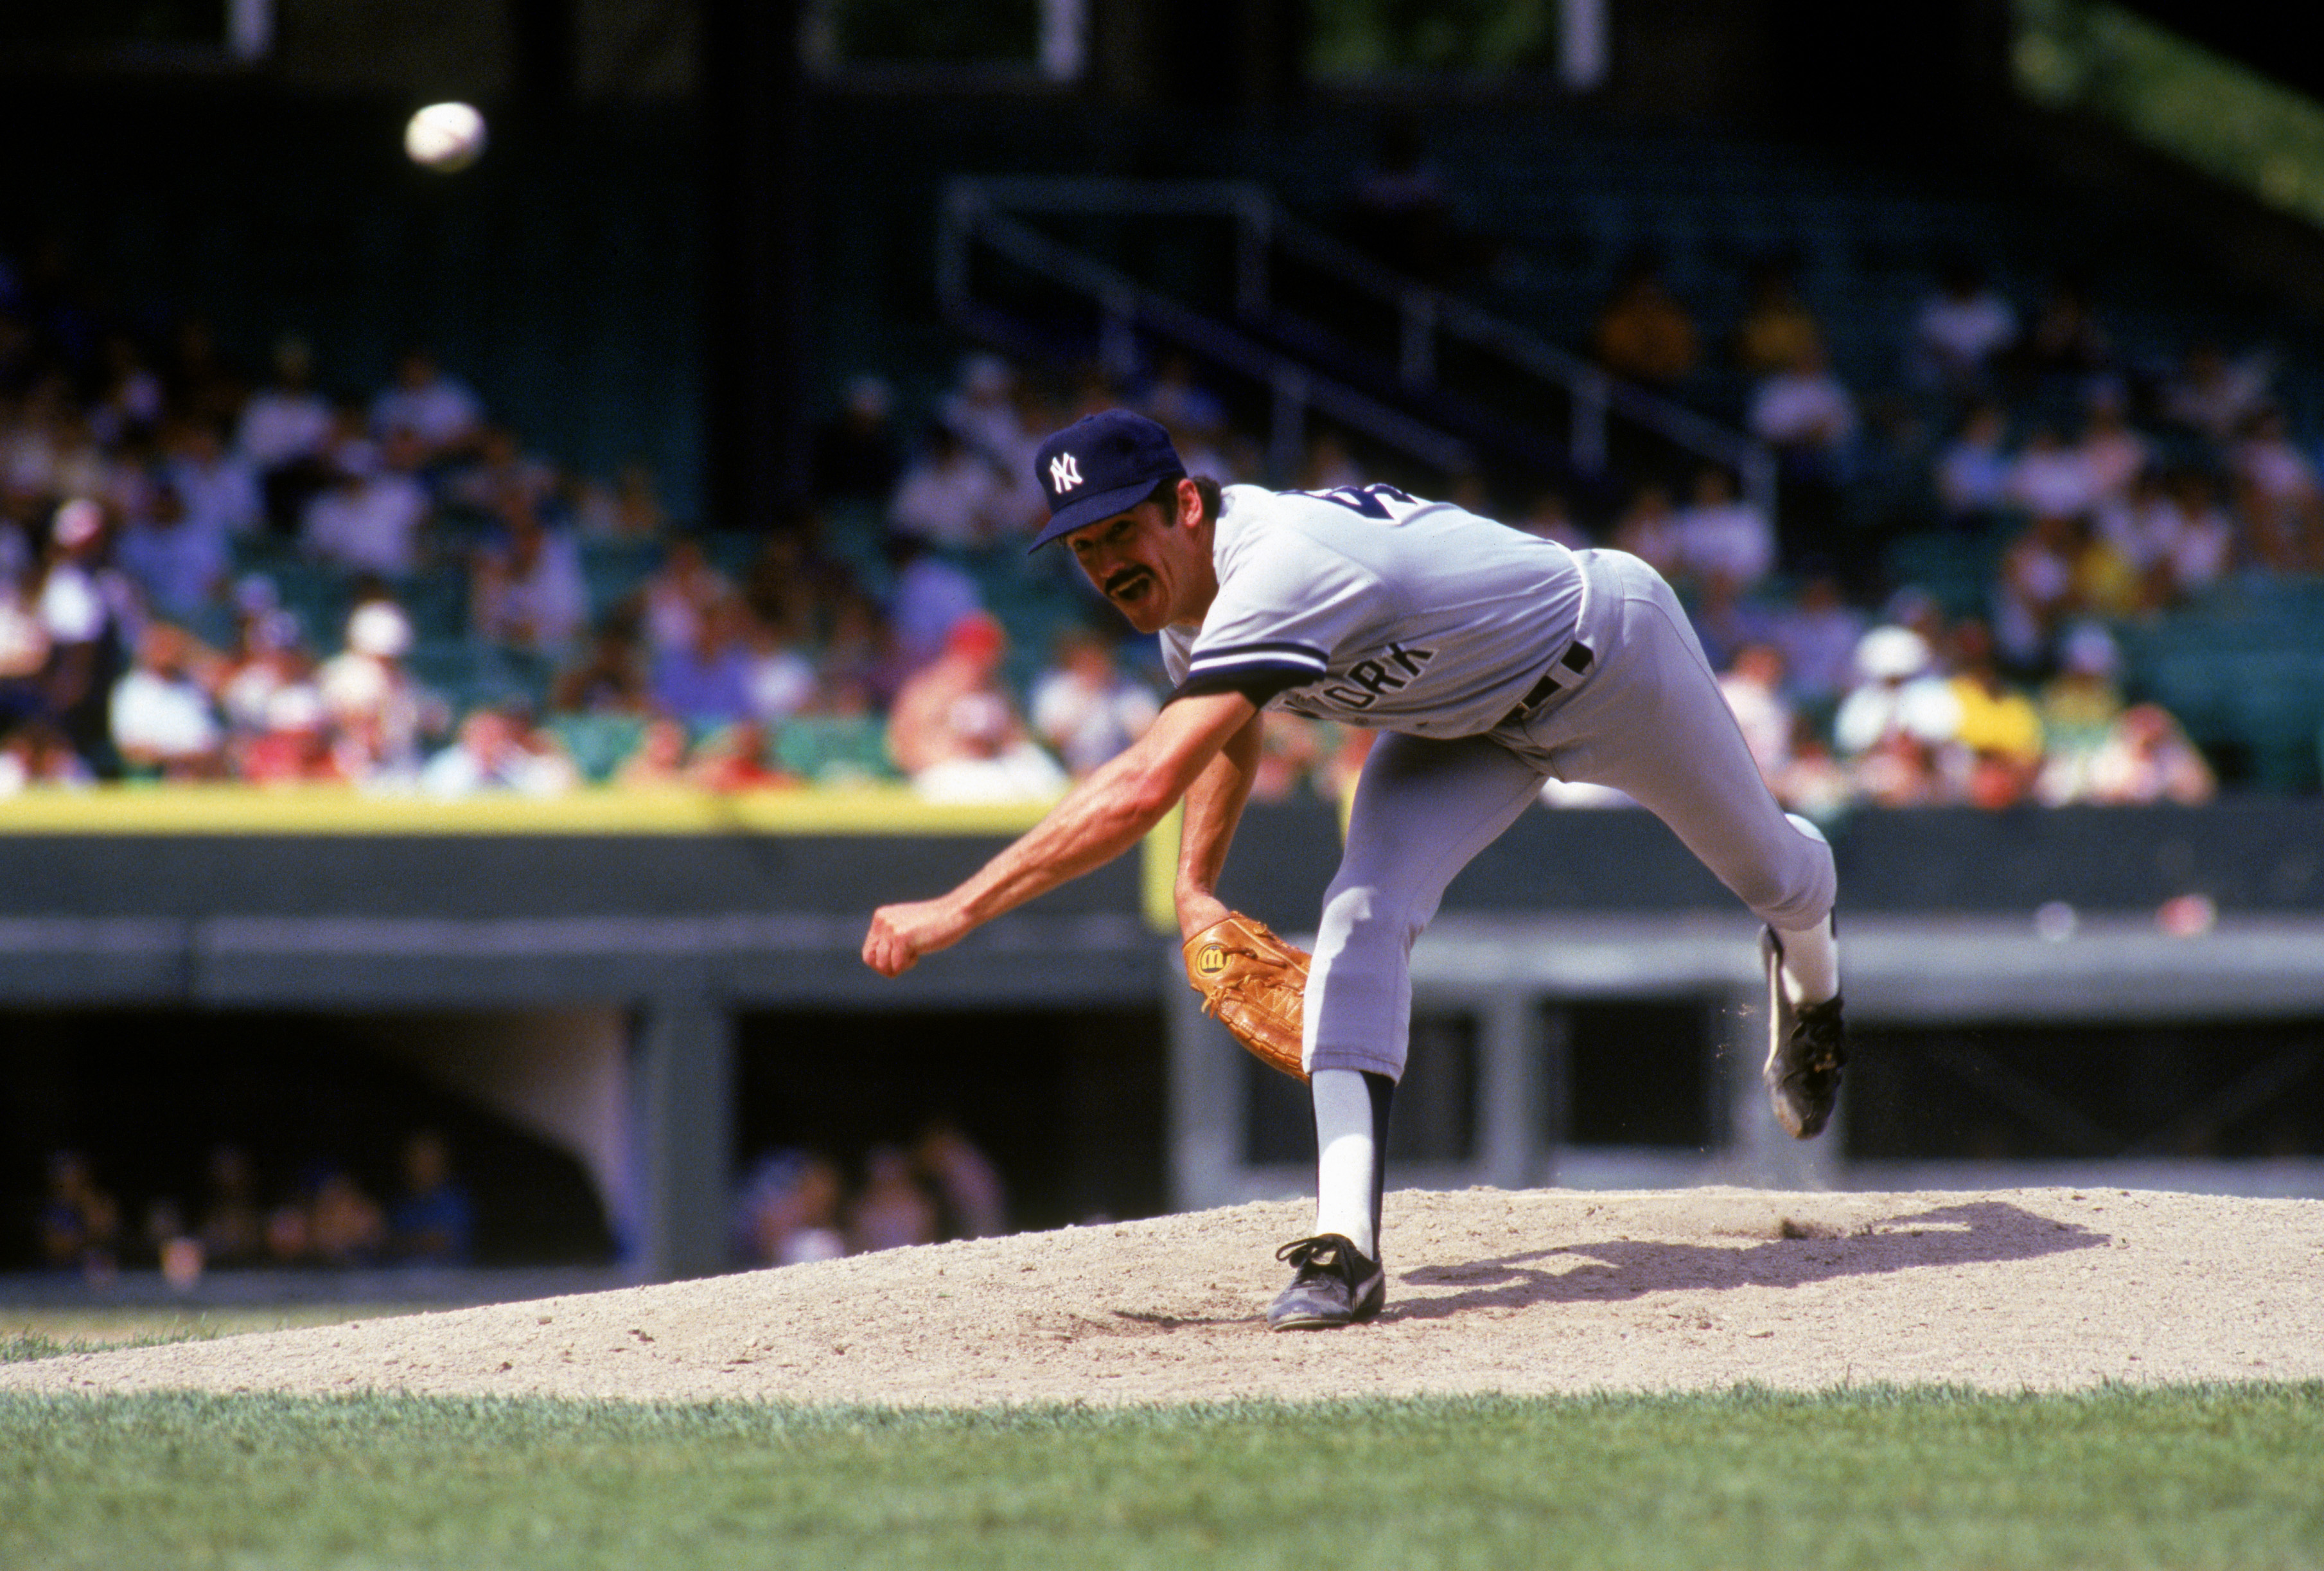 CHICAGO - 1987:  Ron Guidry #49 of the New York Yankees pitches during a game in the 1987 season against the Chicago White Sox at Comiskey Park in Chicago, Illinois. (Photo by Jonathan Daniel/Getty Images)